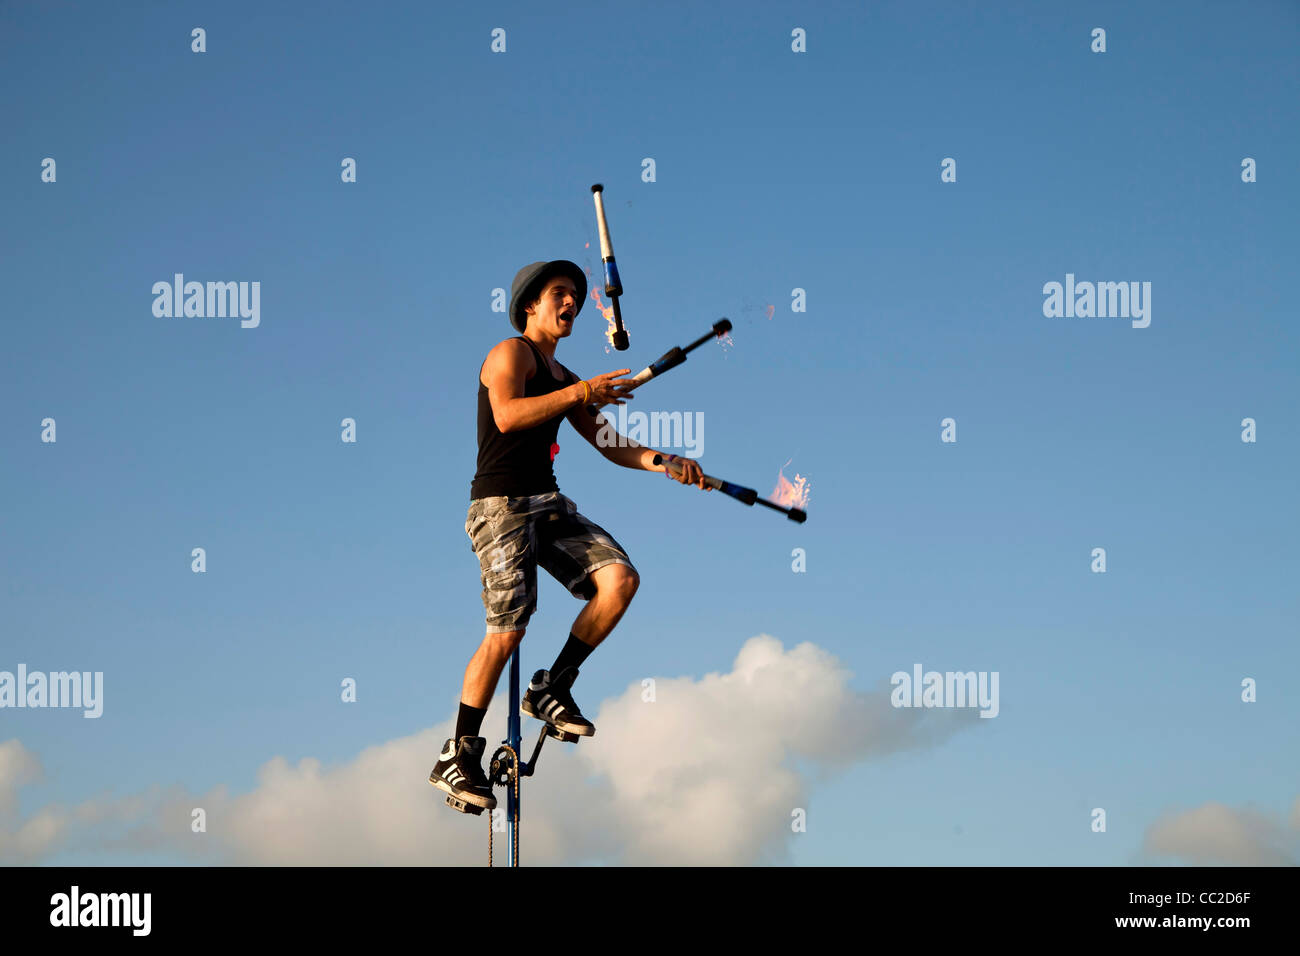 Street performer on Unicycle juggling with torch at Mallory Square in Key West, Florida Keys, Florida, USA - Stock Image